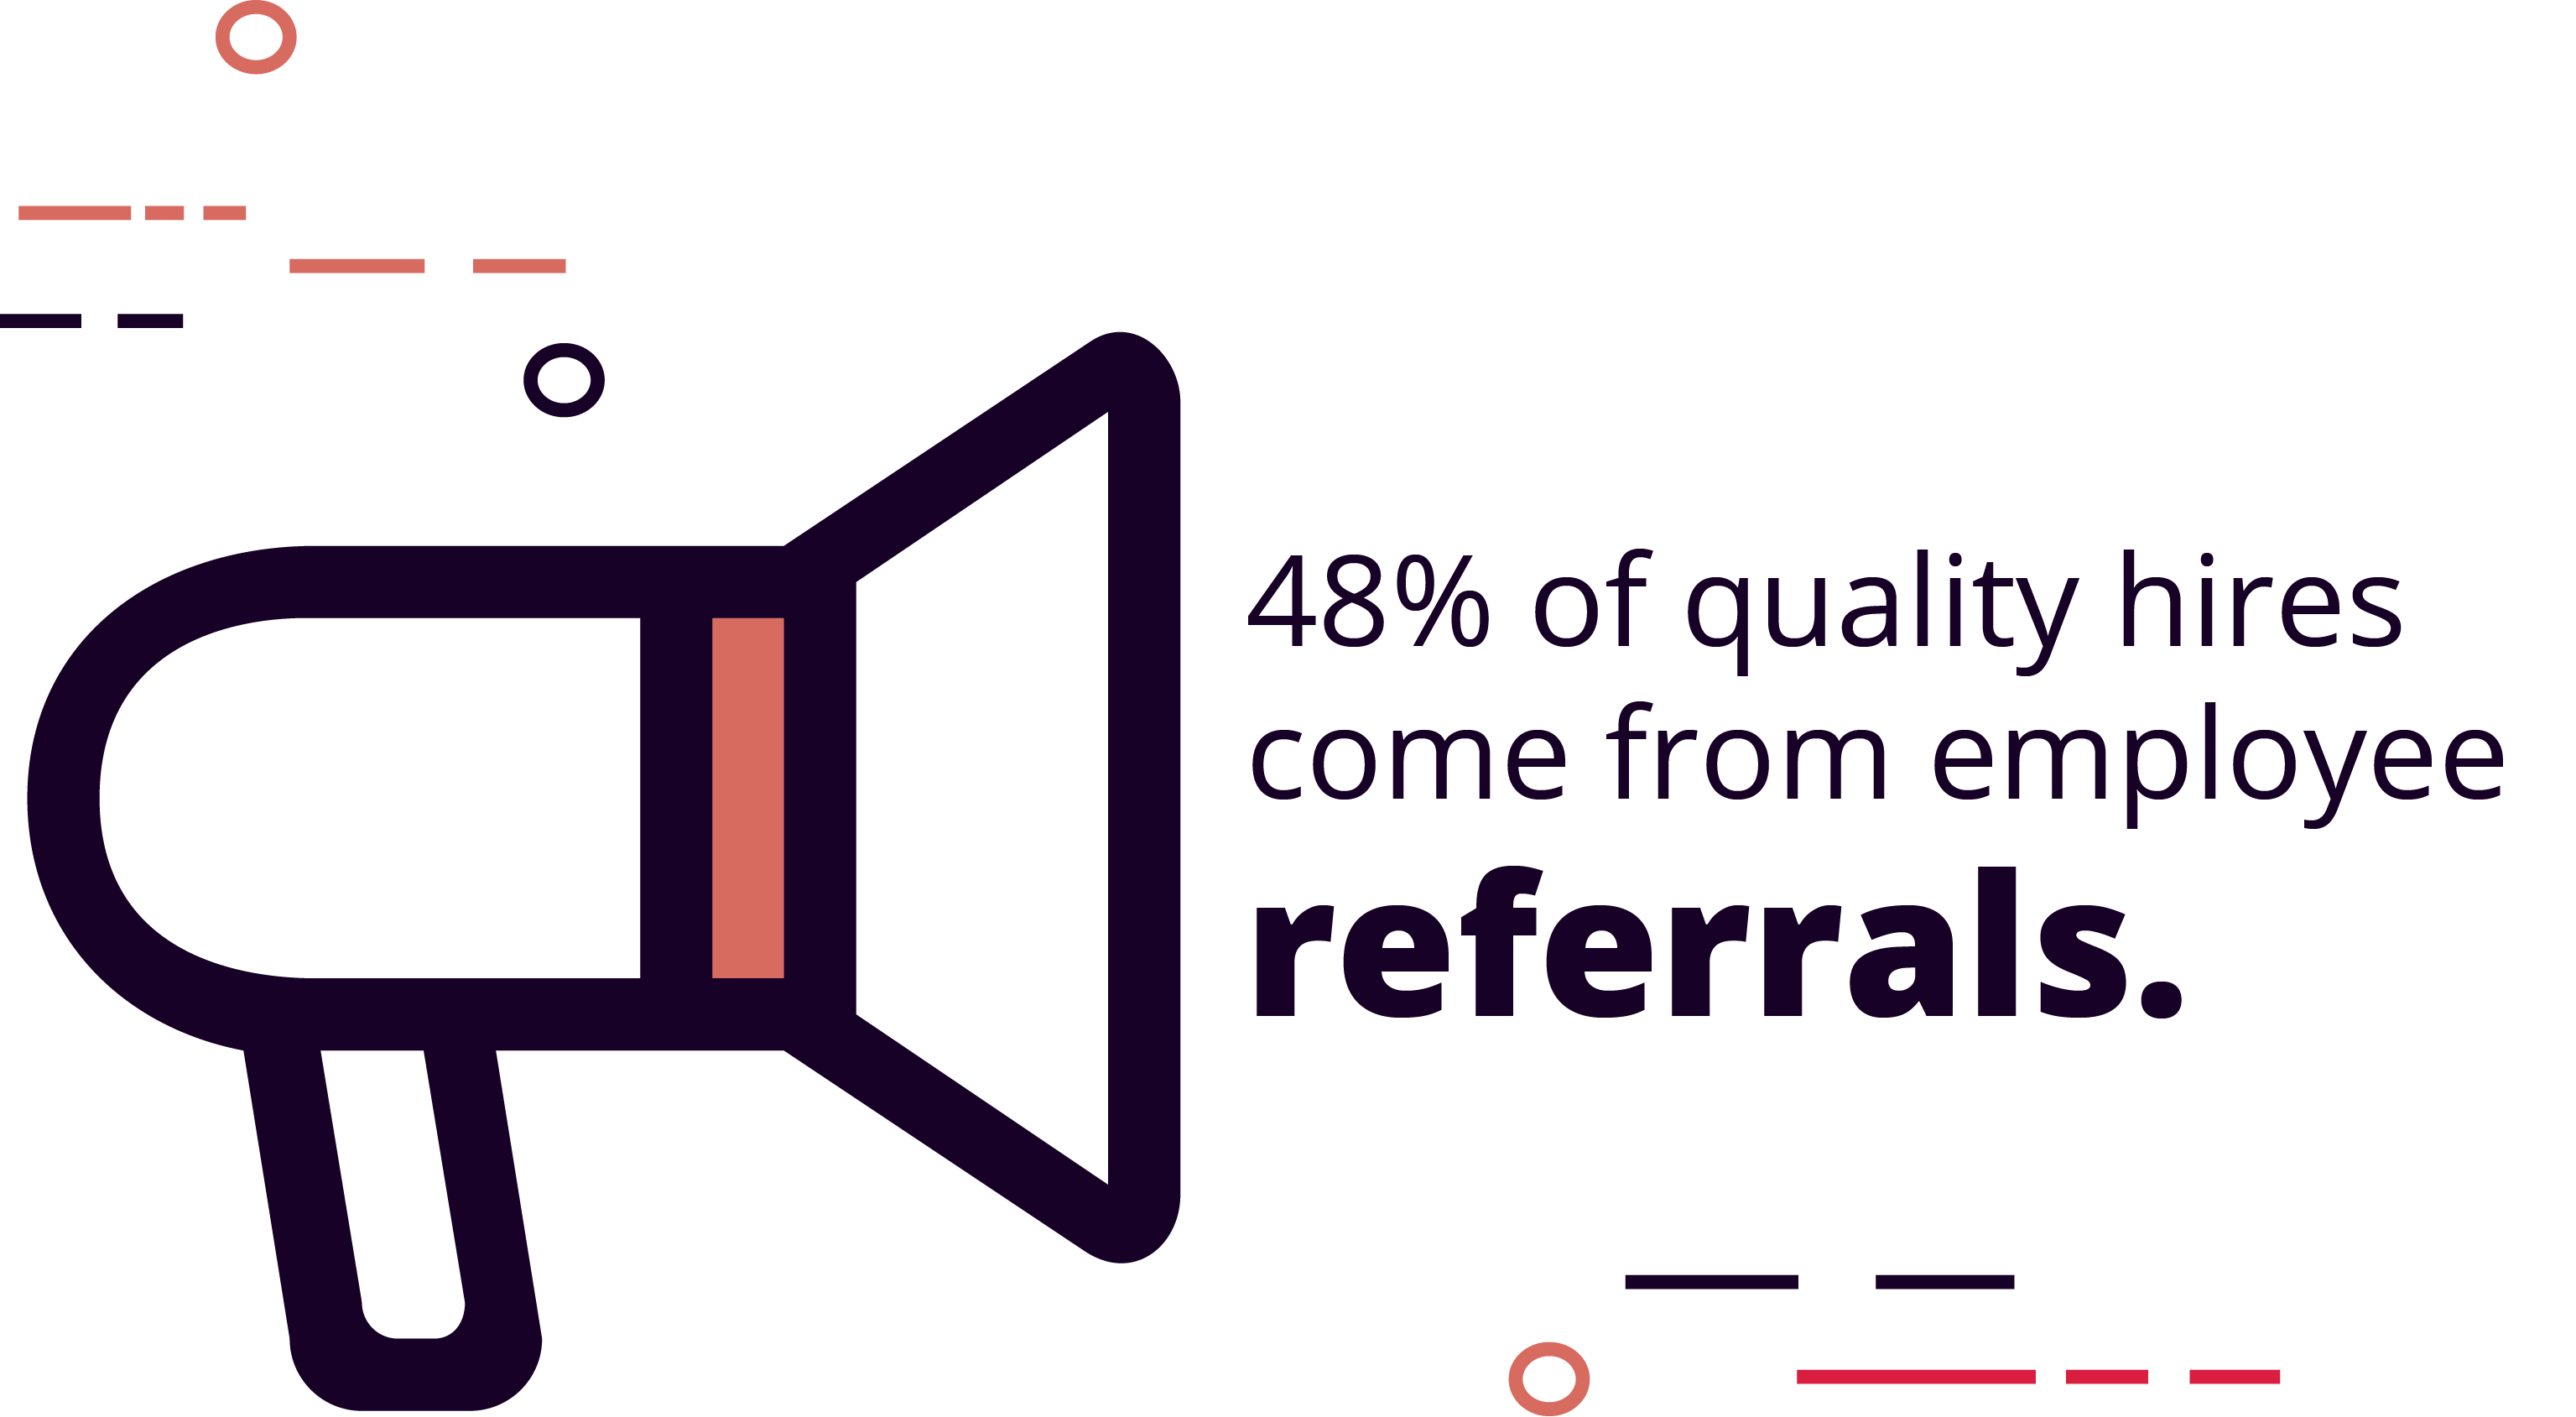 Almost half of businesses say quality hires come from employee referrals